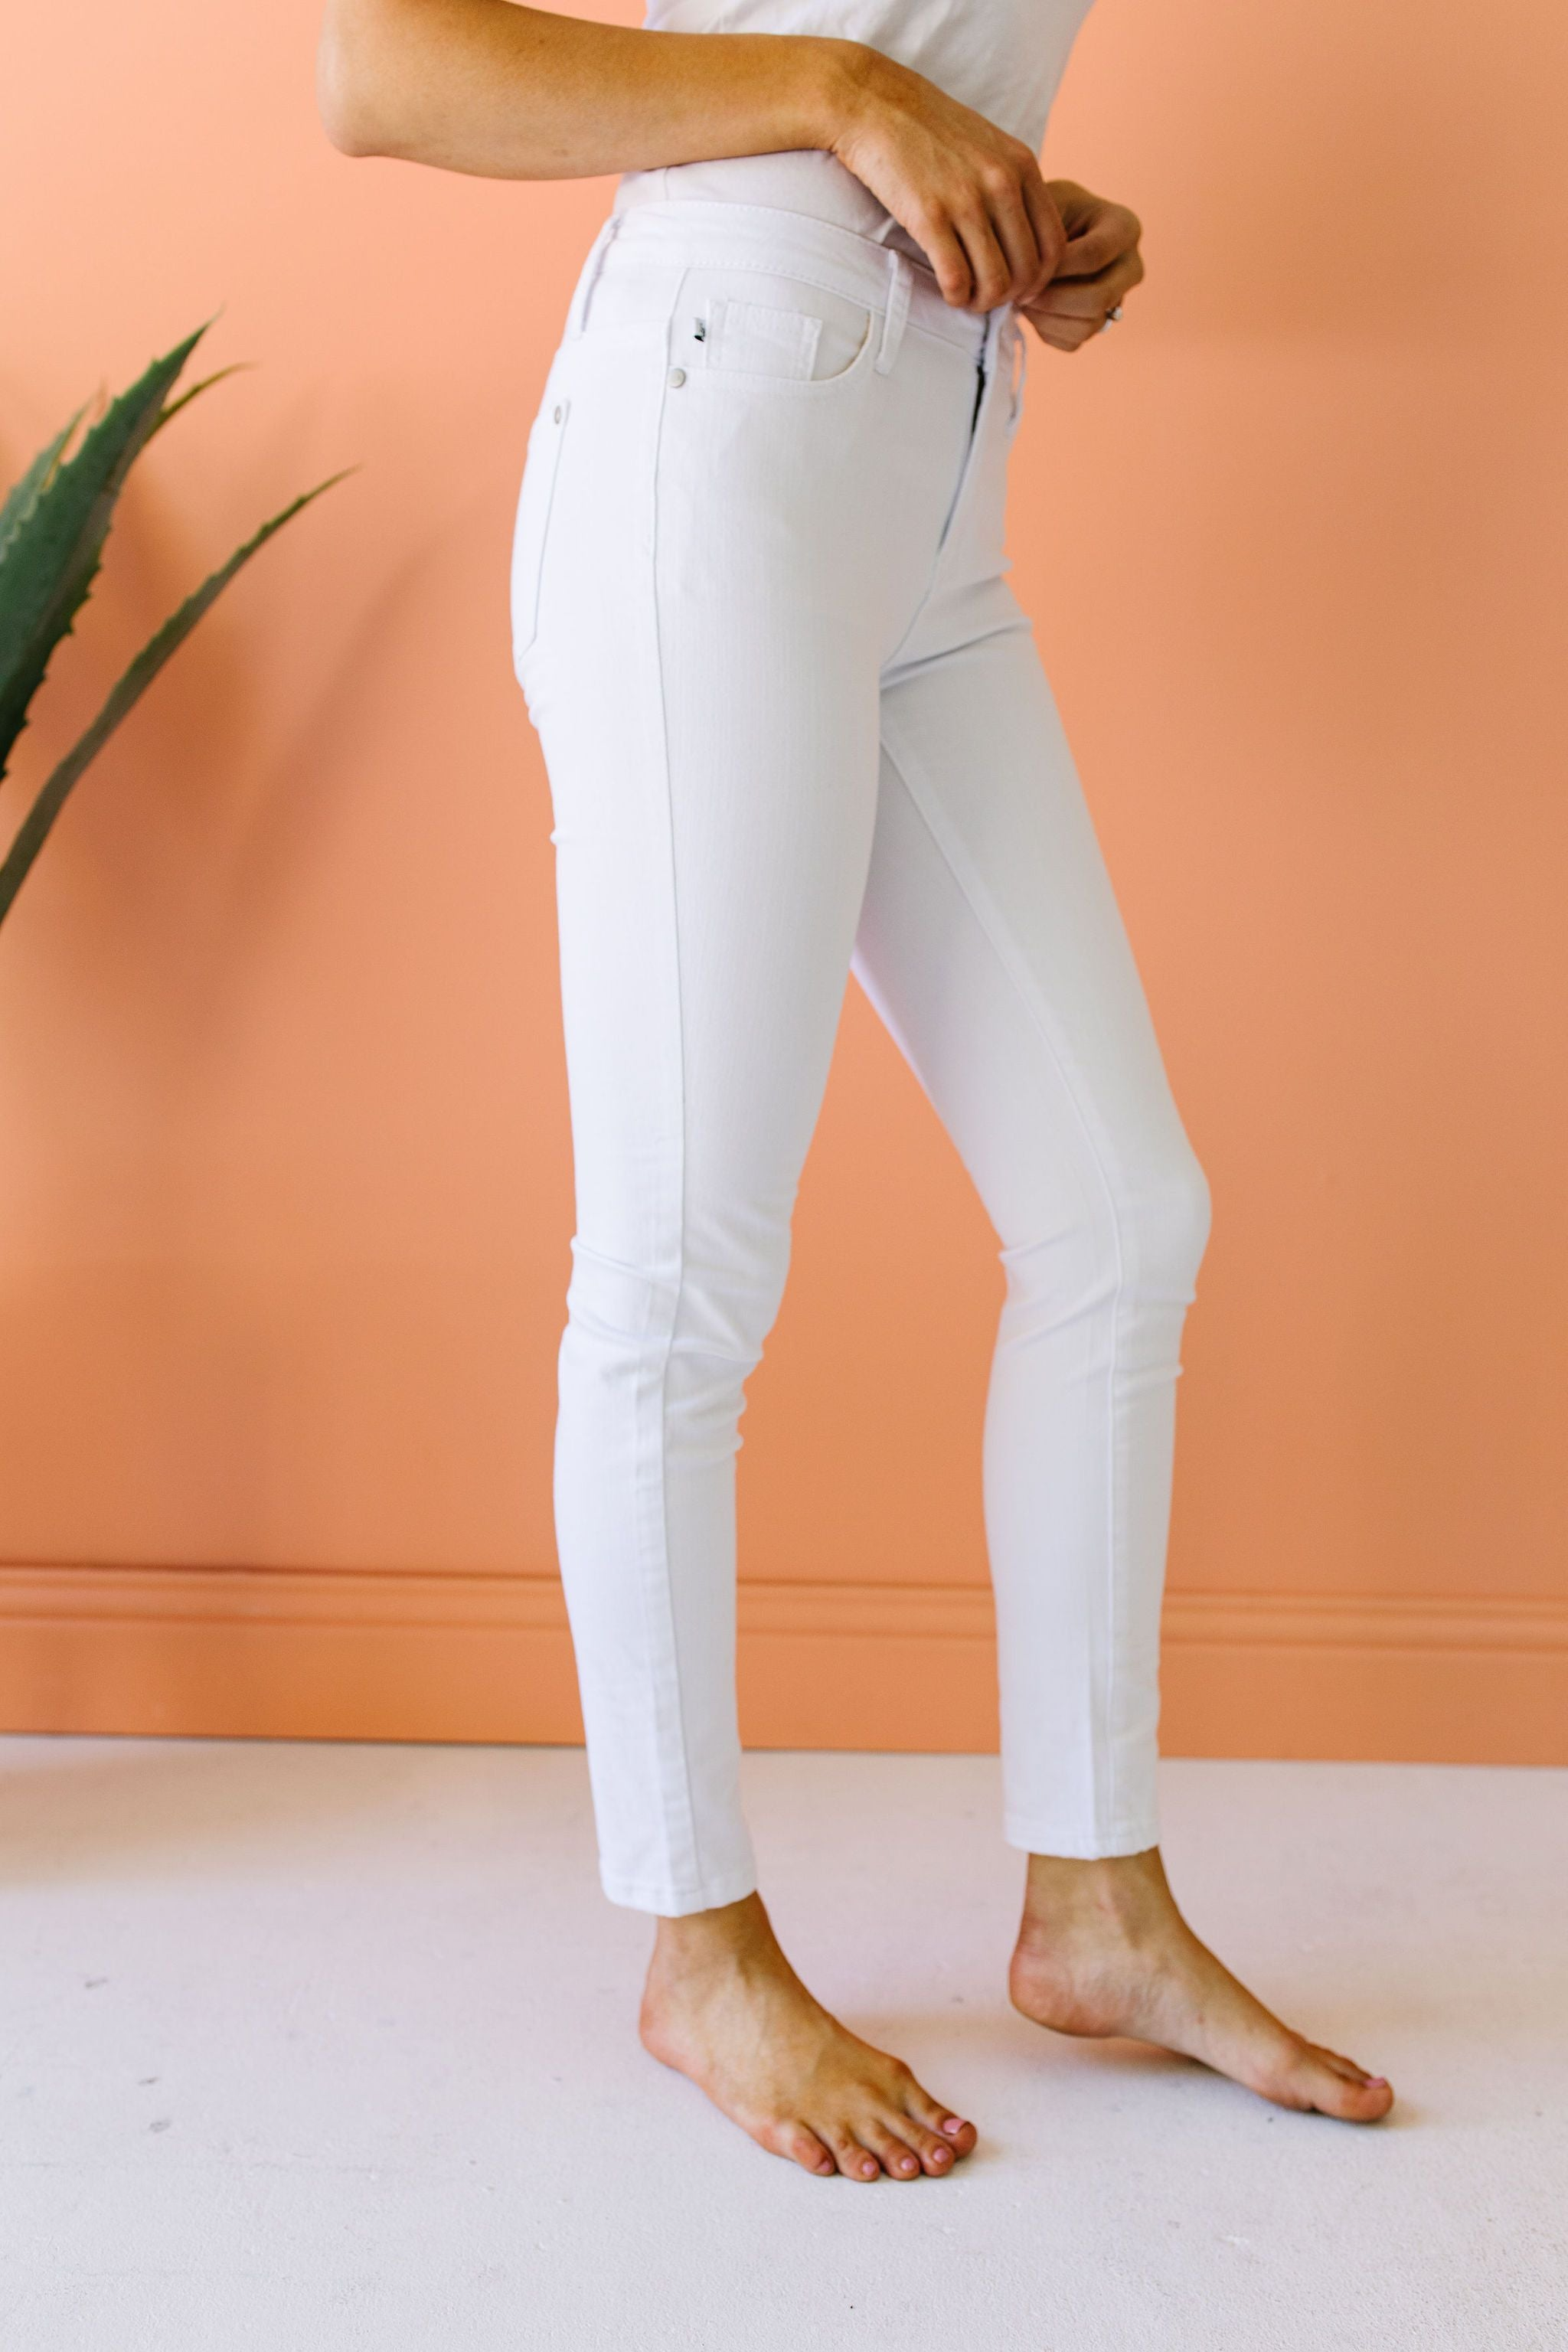 Keeping It Tight White Jeans - KaraMarie Boutique